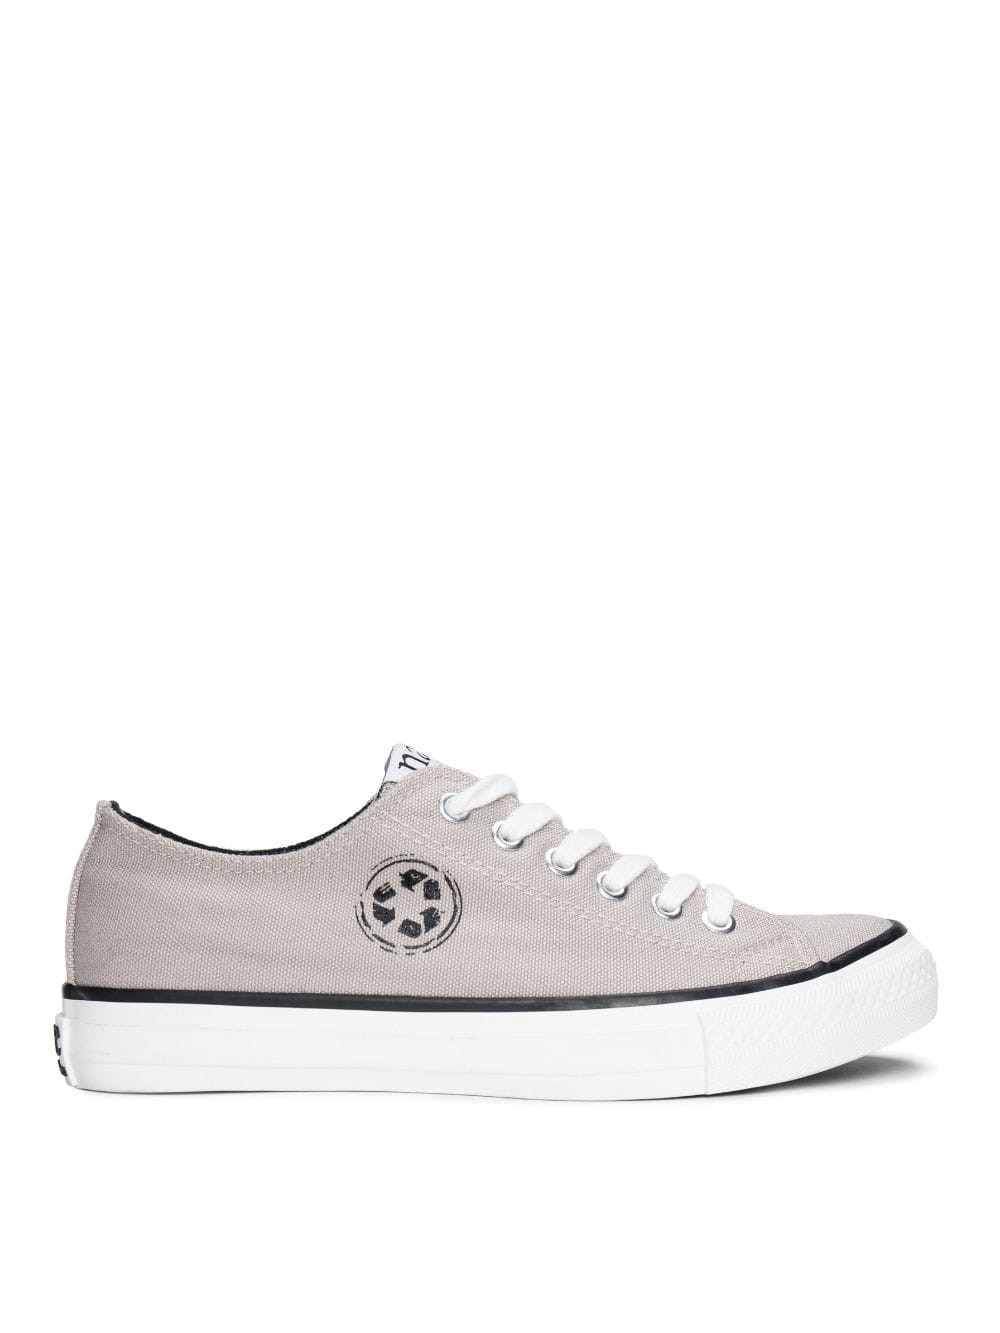 Vegan unisex lace-up sneakers-Re-claim